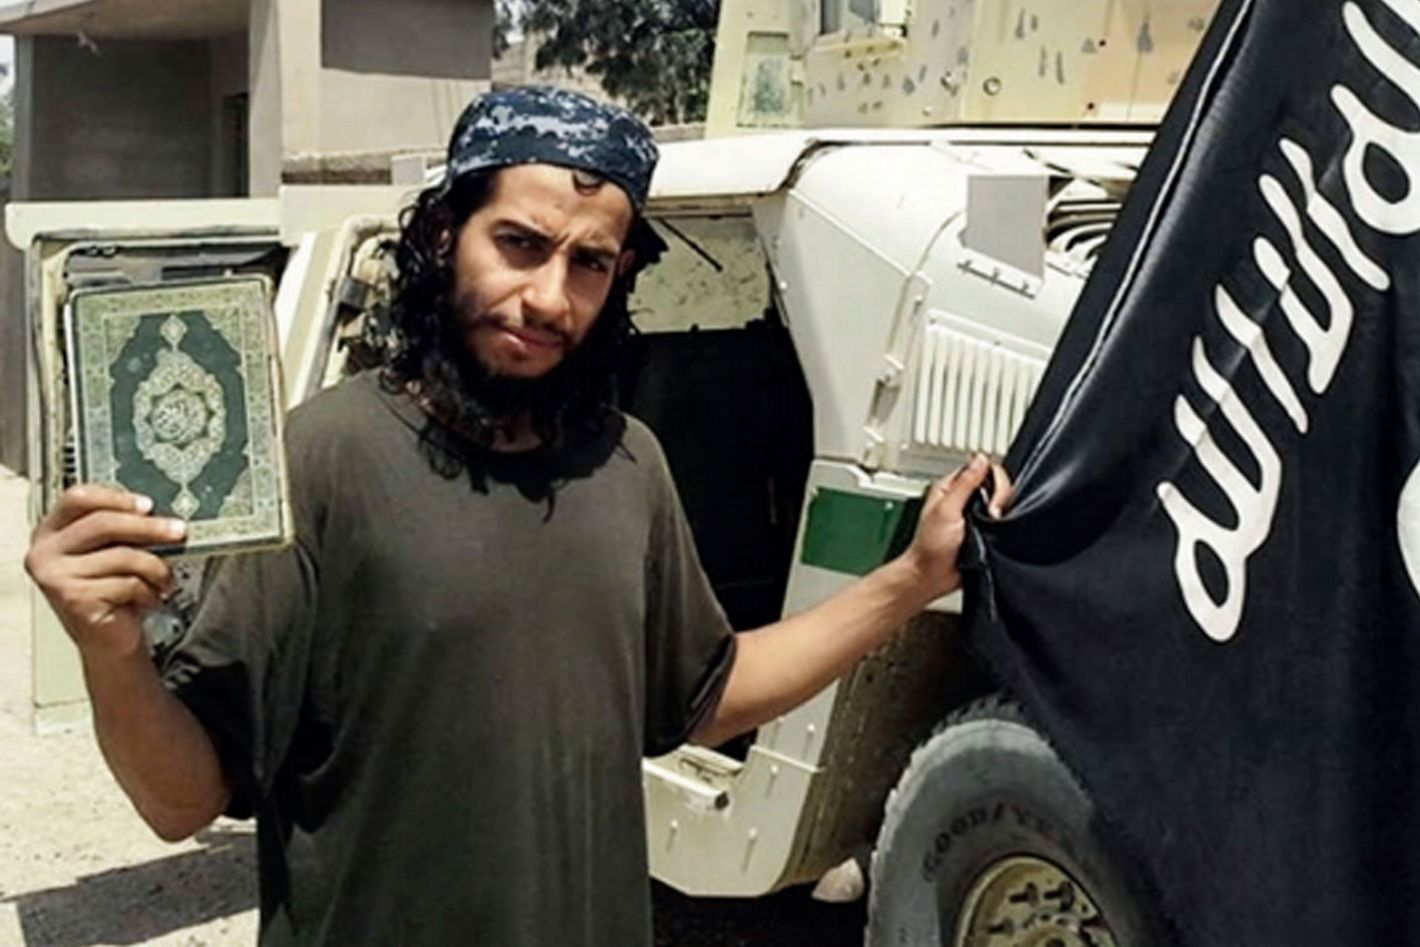 What We Know About Abdelhamid Abaaoud, the ISIS Leader